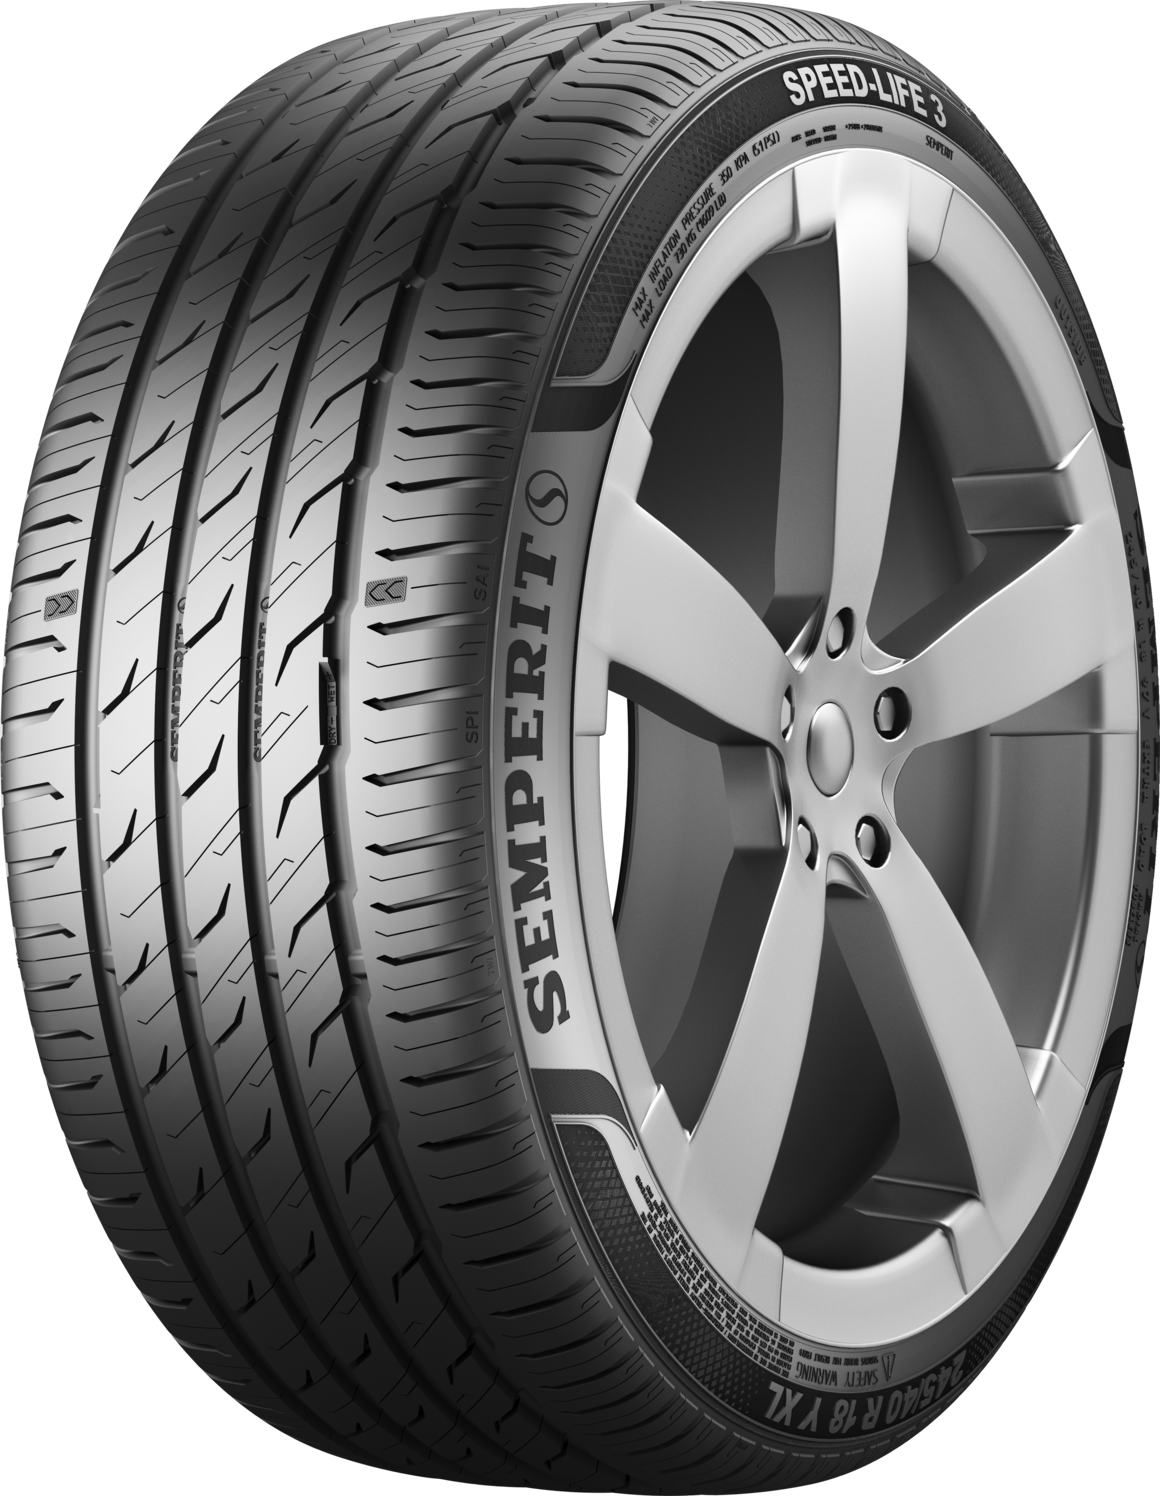 Gomme Nuove Semperit 225/40 R18 92Y SPEED-LIFE 3 FR XL pneumatici nuovi Estivo